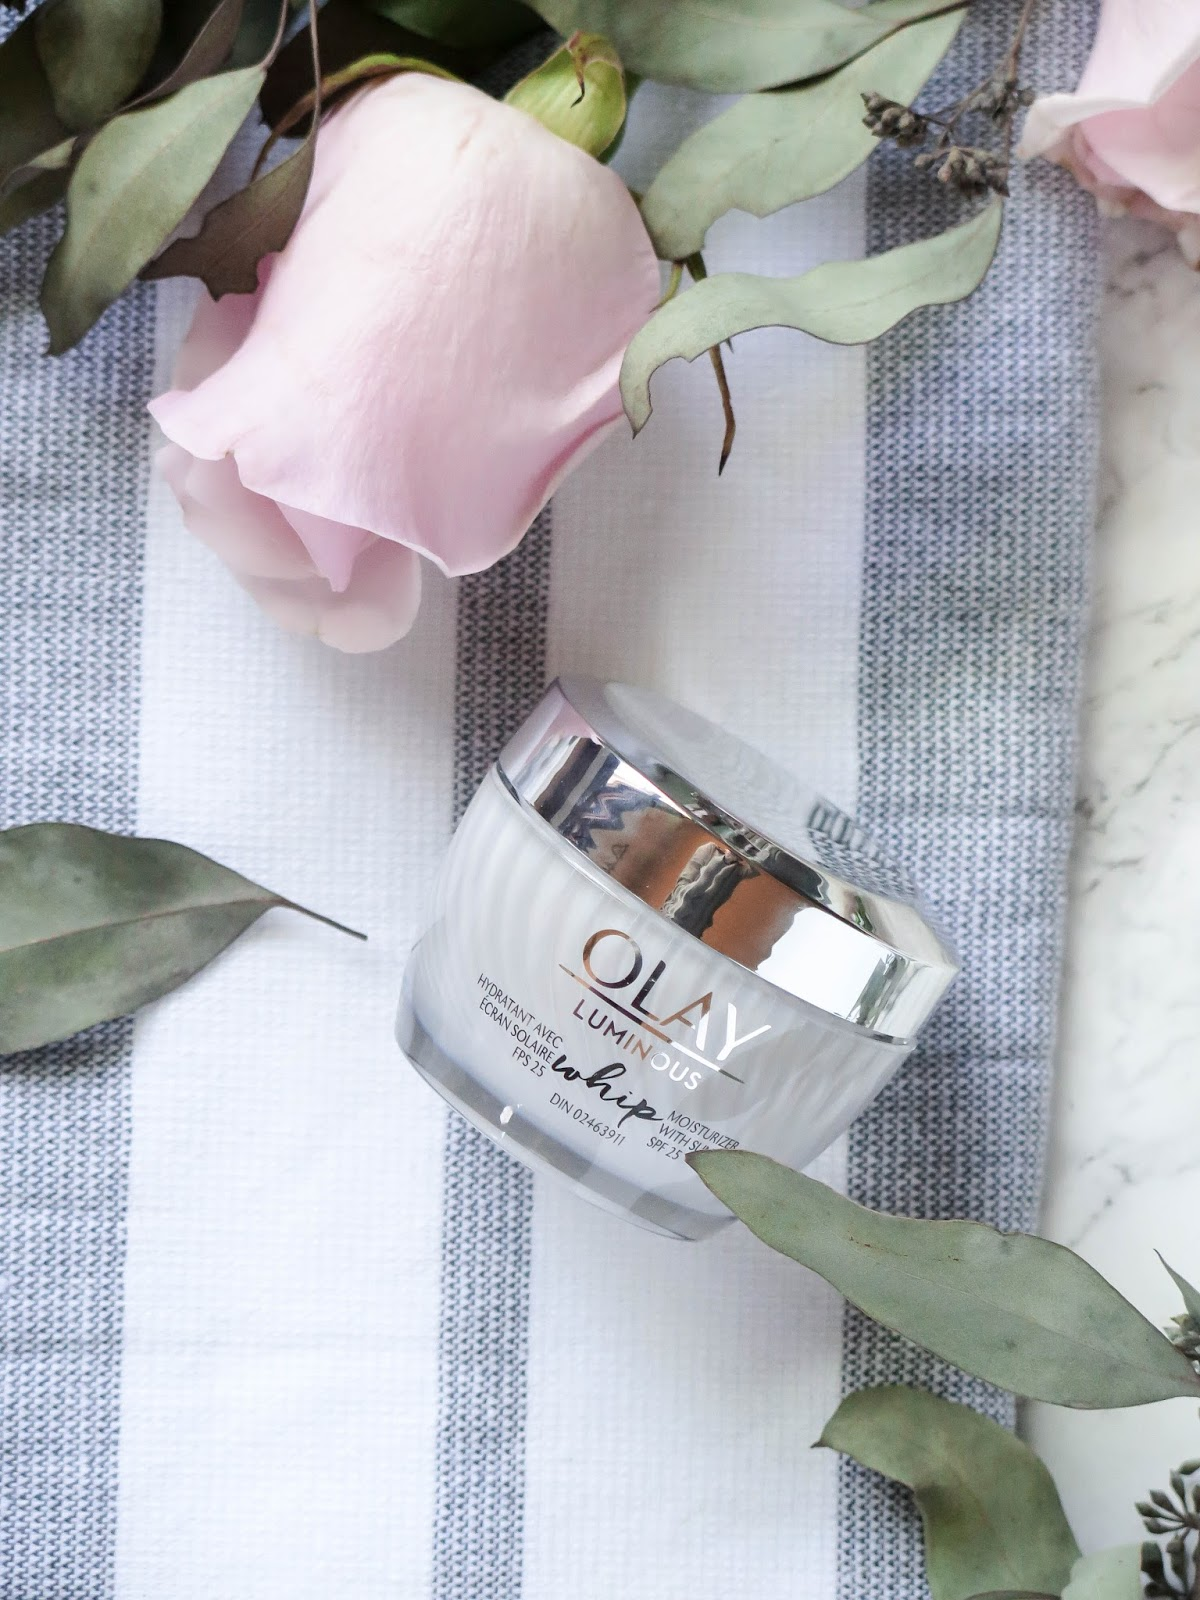 10 Steps To The Best Skin Of Your Life | The How, When & Why Of Skincare | Proper Application Order & Olay Luminous Whips Moisturizer Review | labellesirene.ca